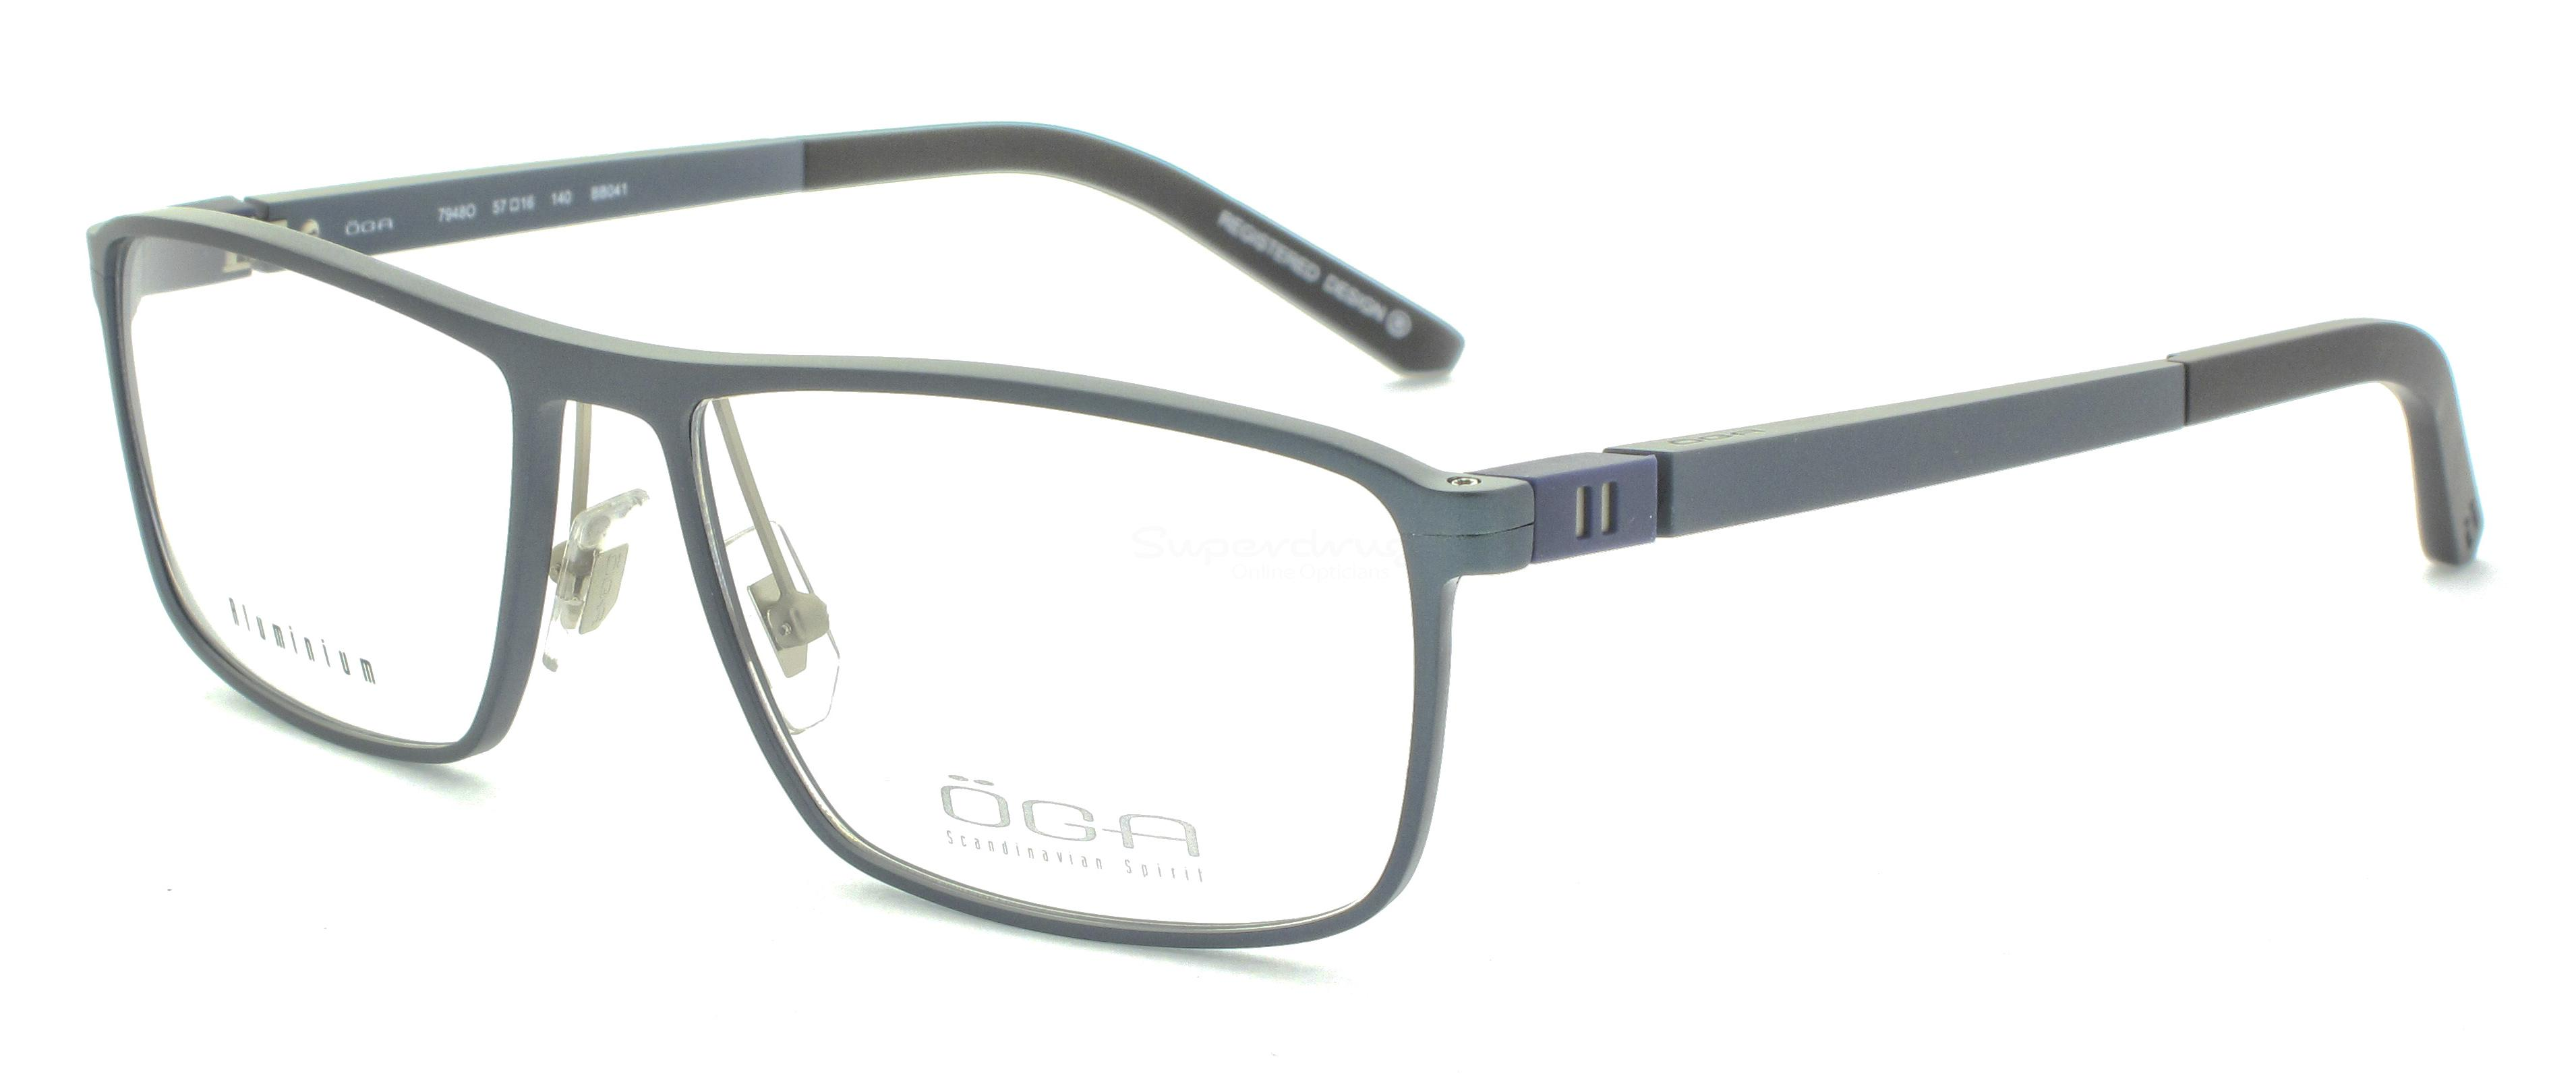 BB041 7948O SKARP (FULL  ALUMINIUM) Glasses, ÖGA Scandinavian Spirit